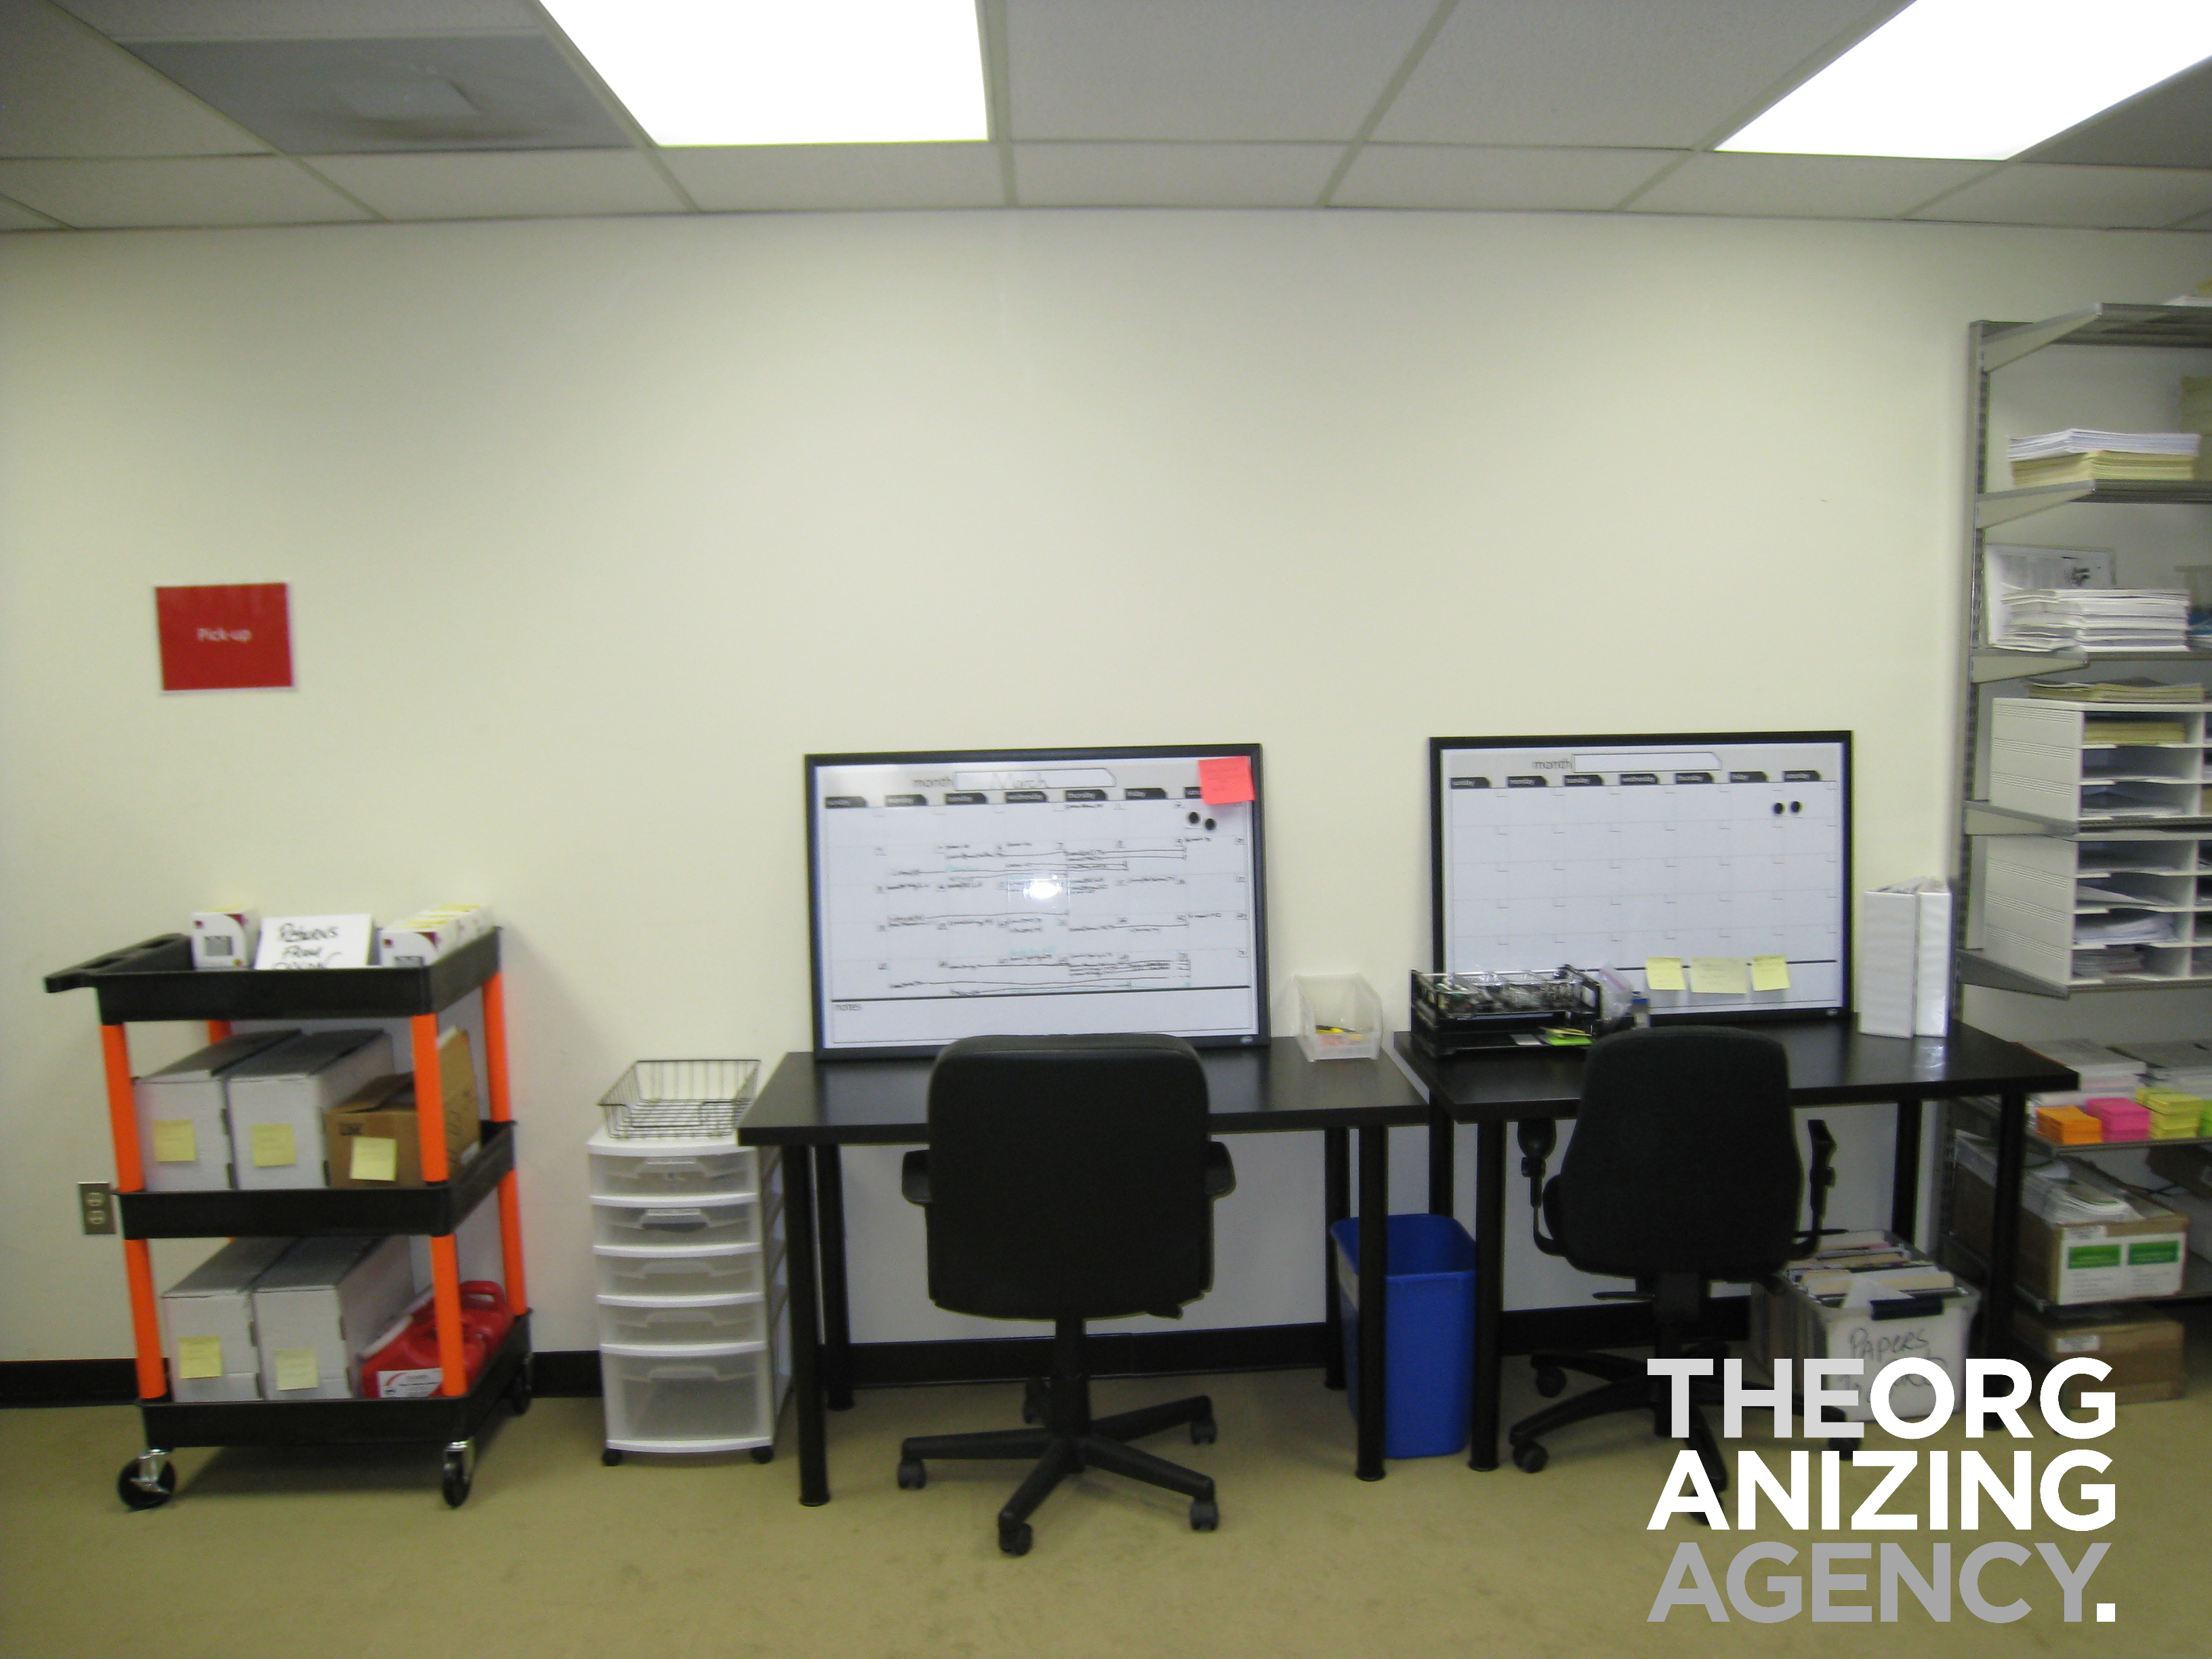 Shipping Desk AreaShipping Desk Area  The Organizing Agency